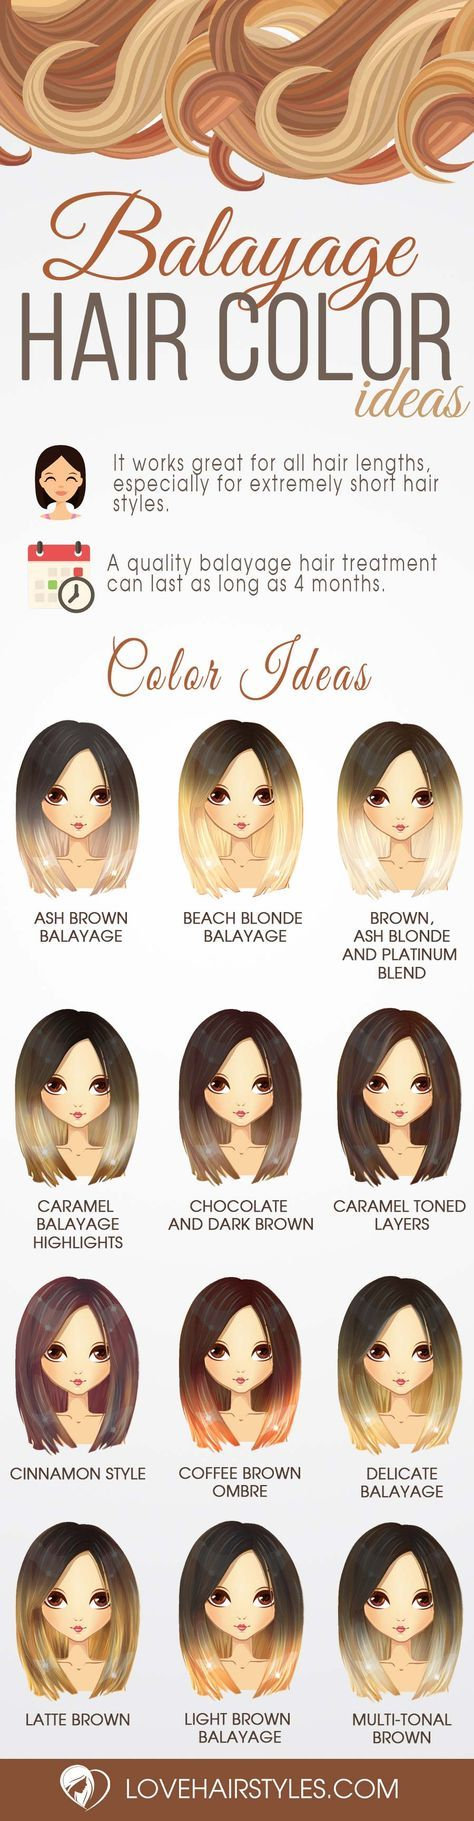 balayage hair ideas in brown to caramel tone balayage hair